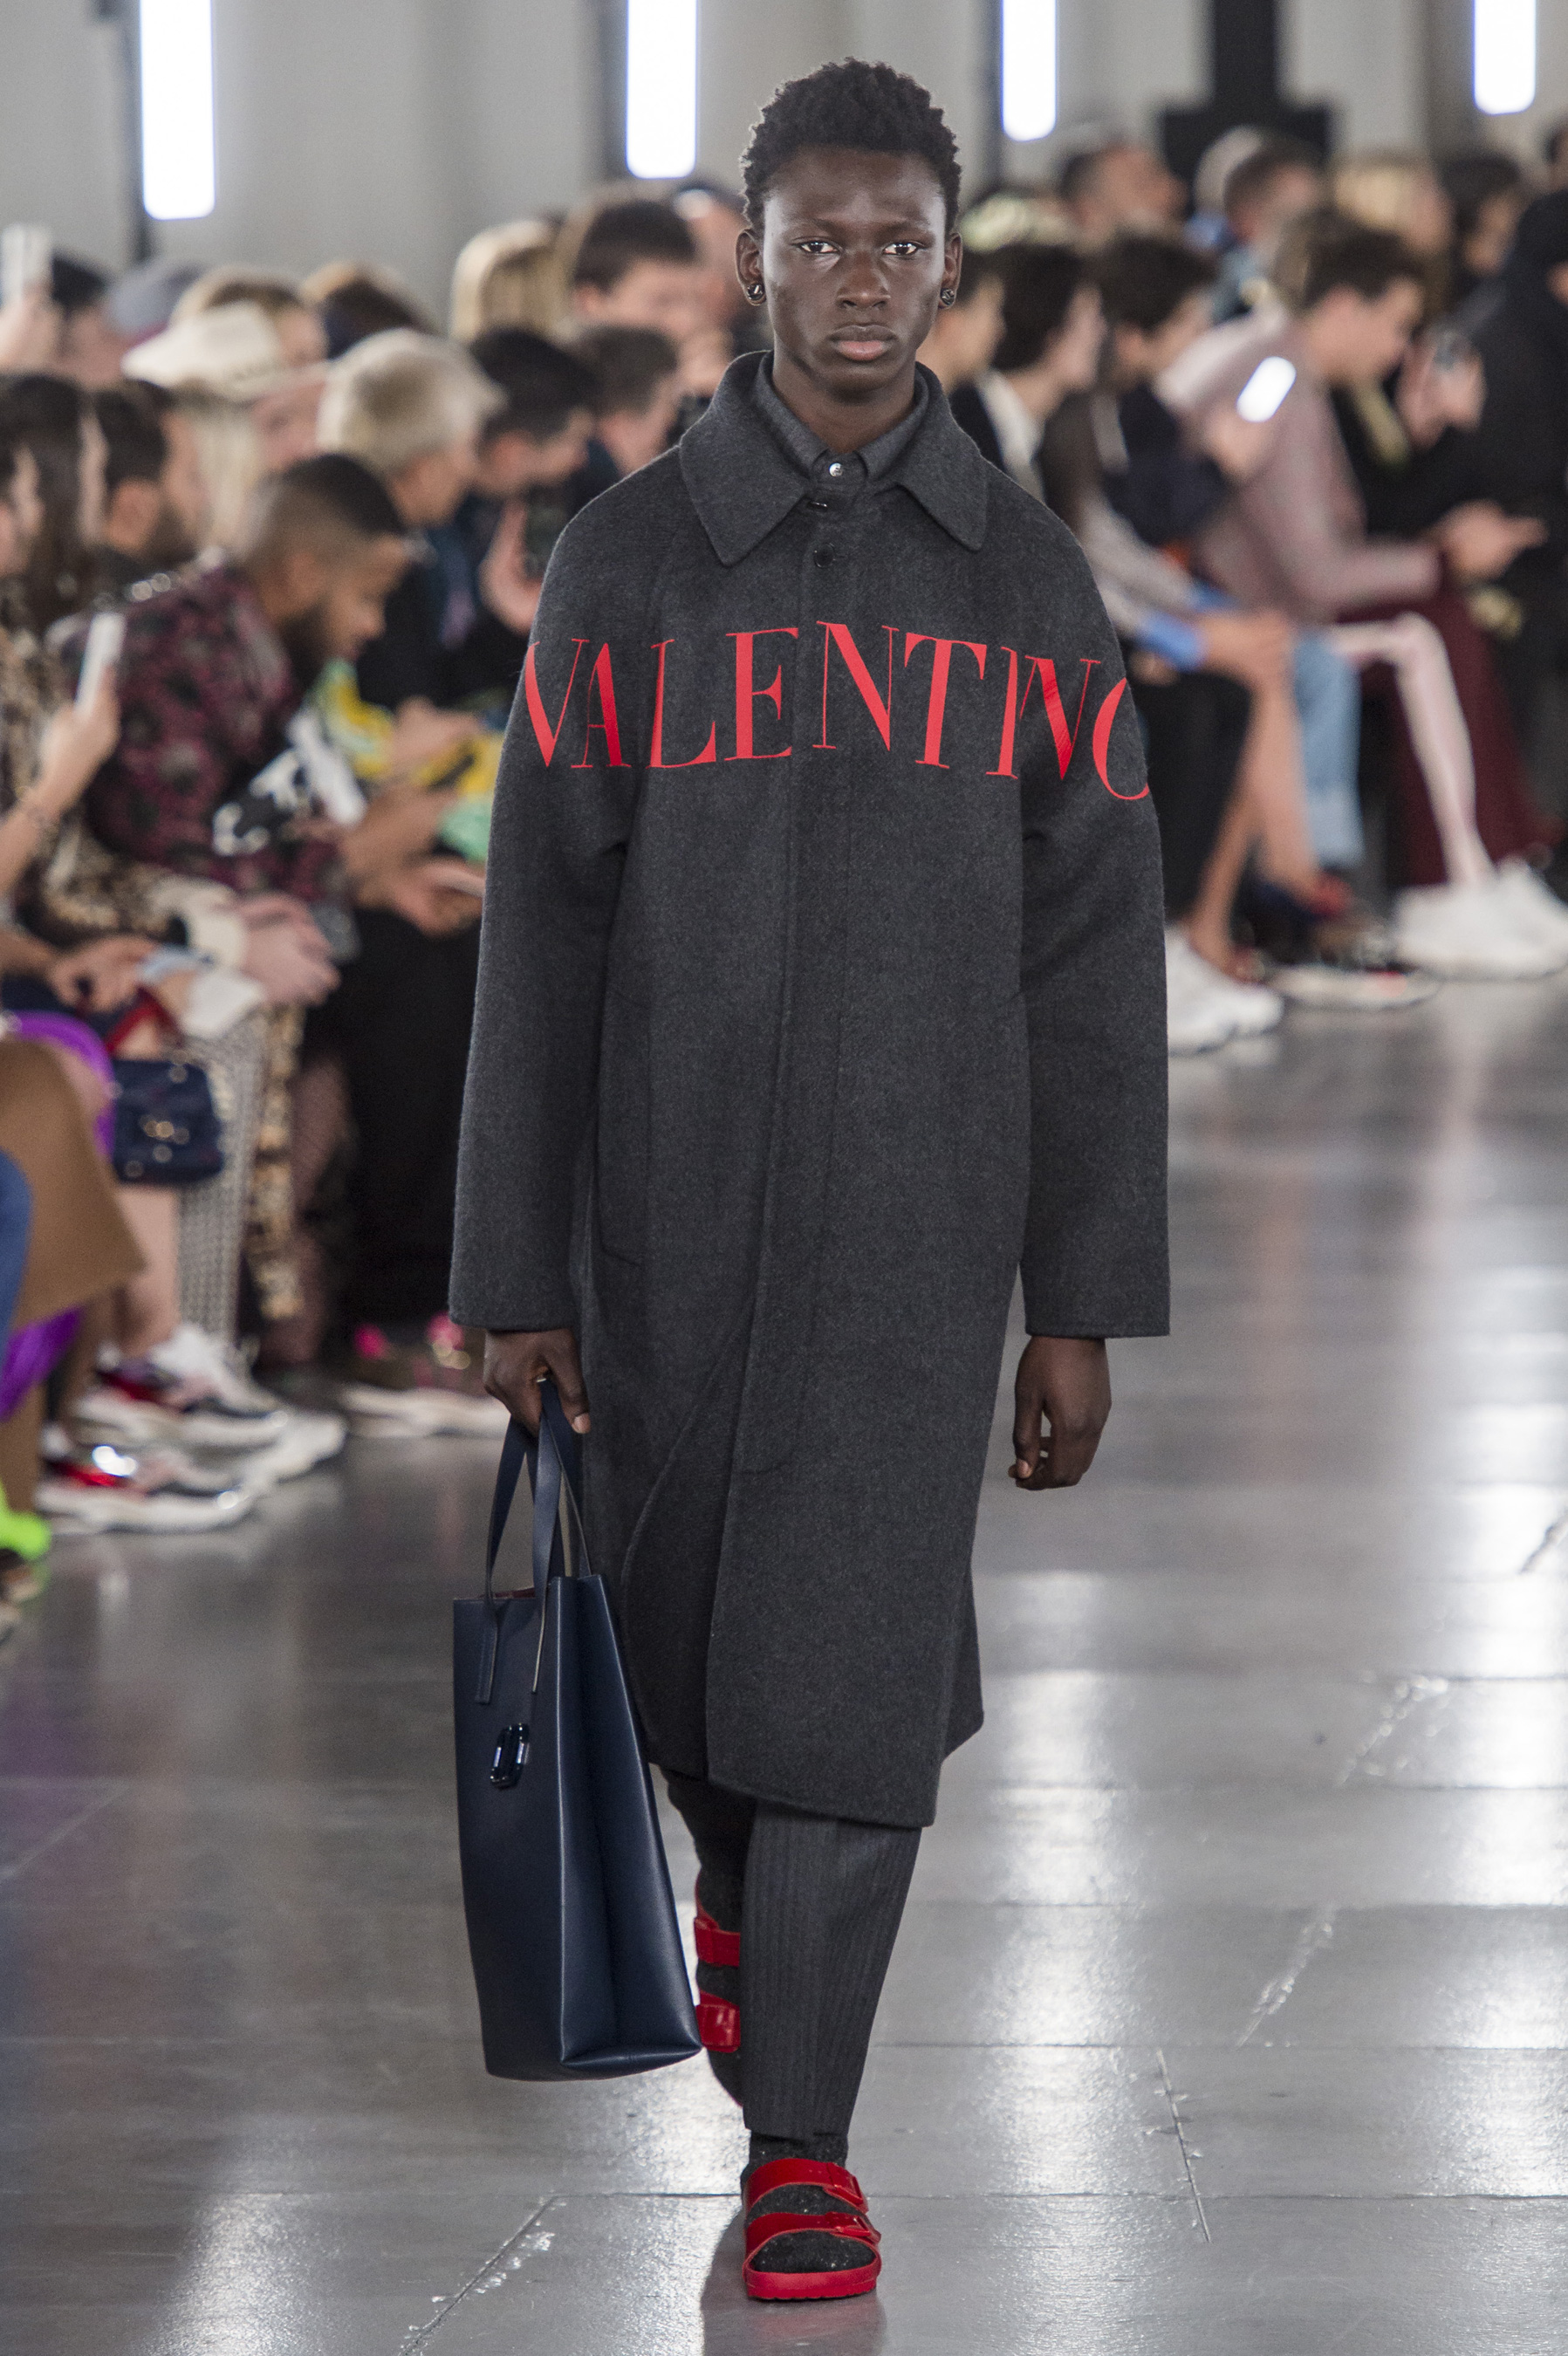 Valentino Fall 2019 Men's Fashion Show